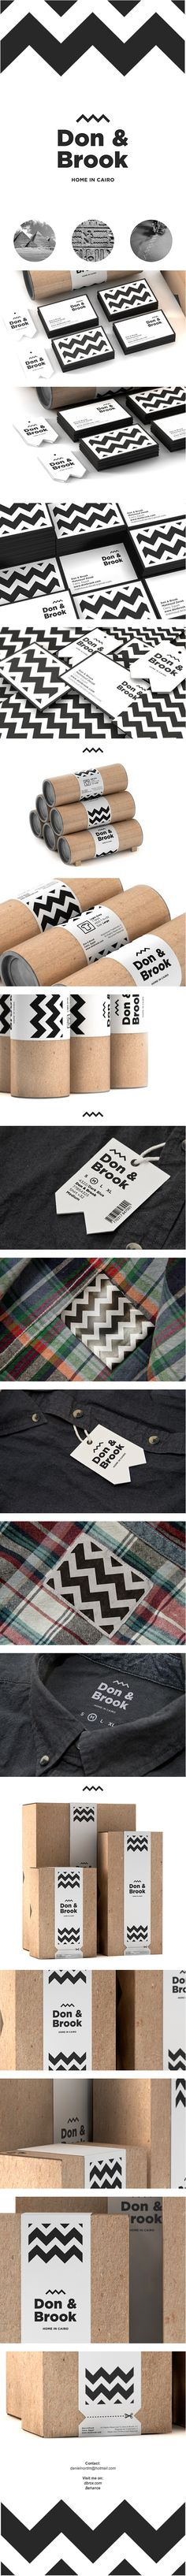 Don & Brook is a Cairo based menswear and lifestyle brand. Love this #identity #packaging #branding PD